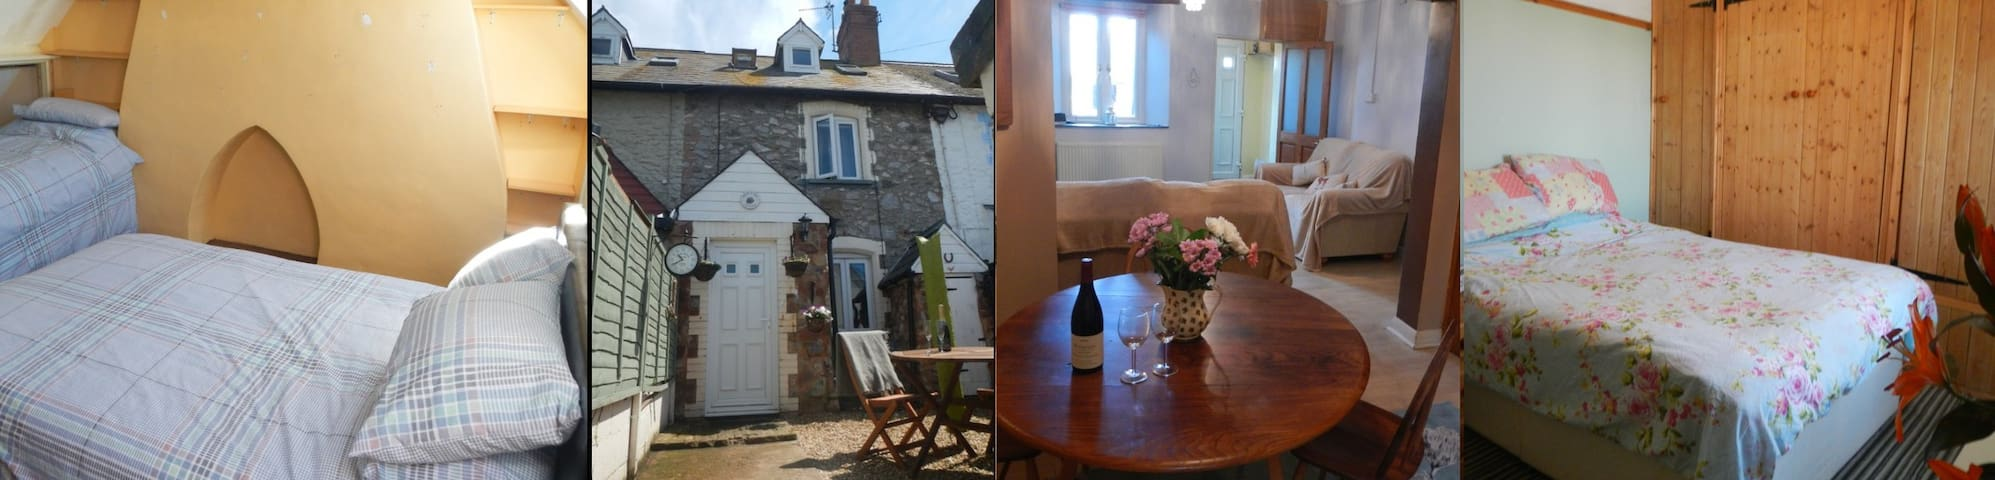 3 Bed Cottage in Sea Side Town Watchet near Exmoor - Watchet - Dom